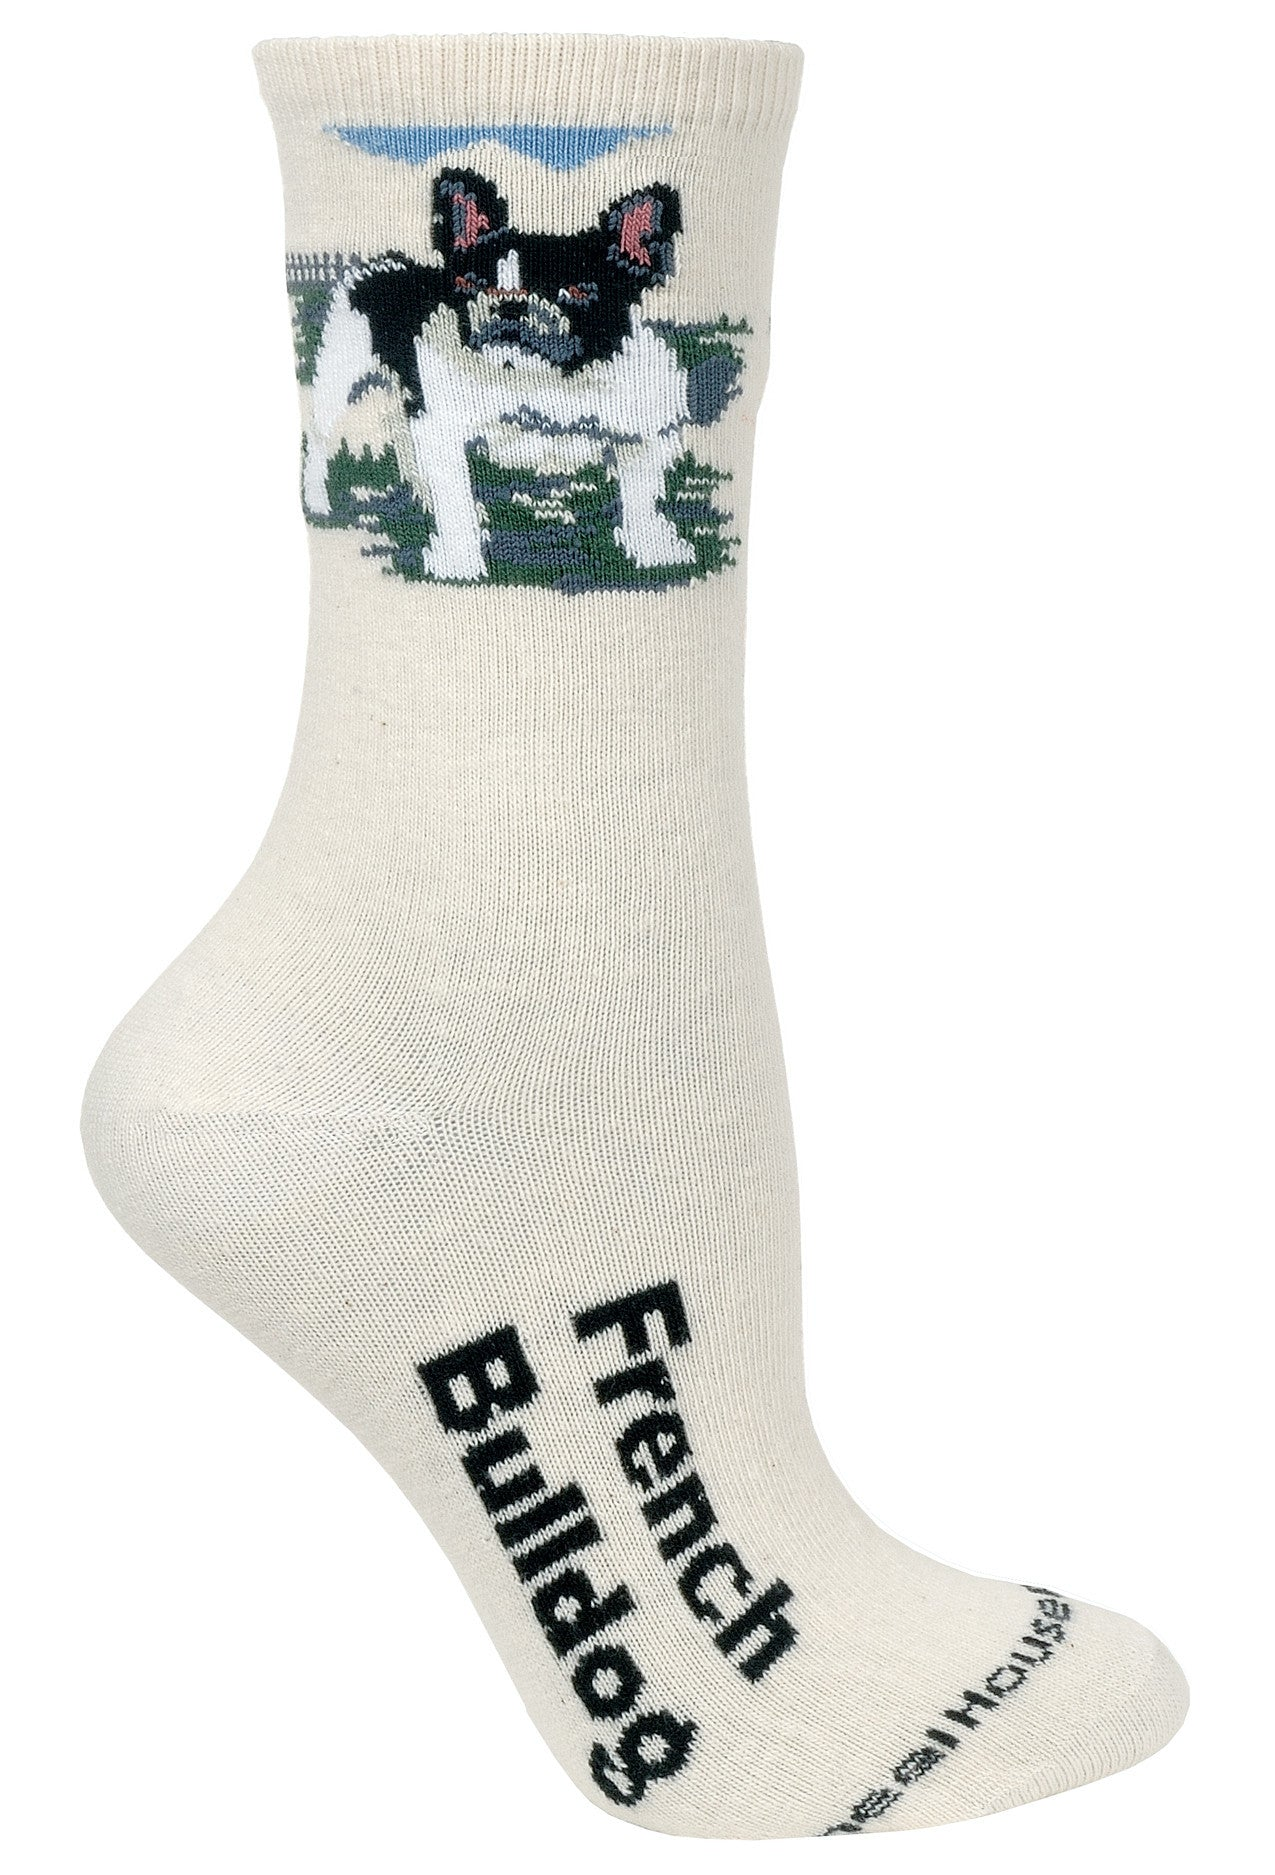 French Bulldog on Natural Socks